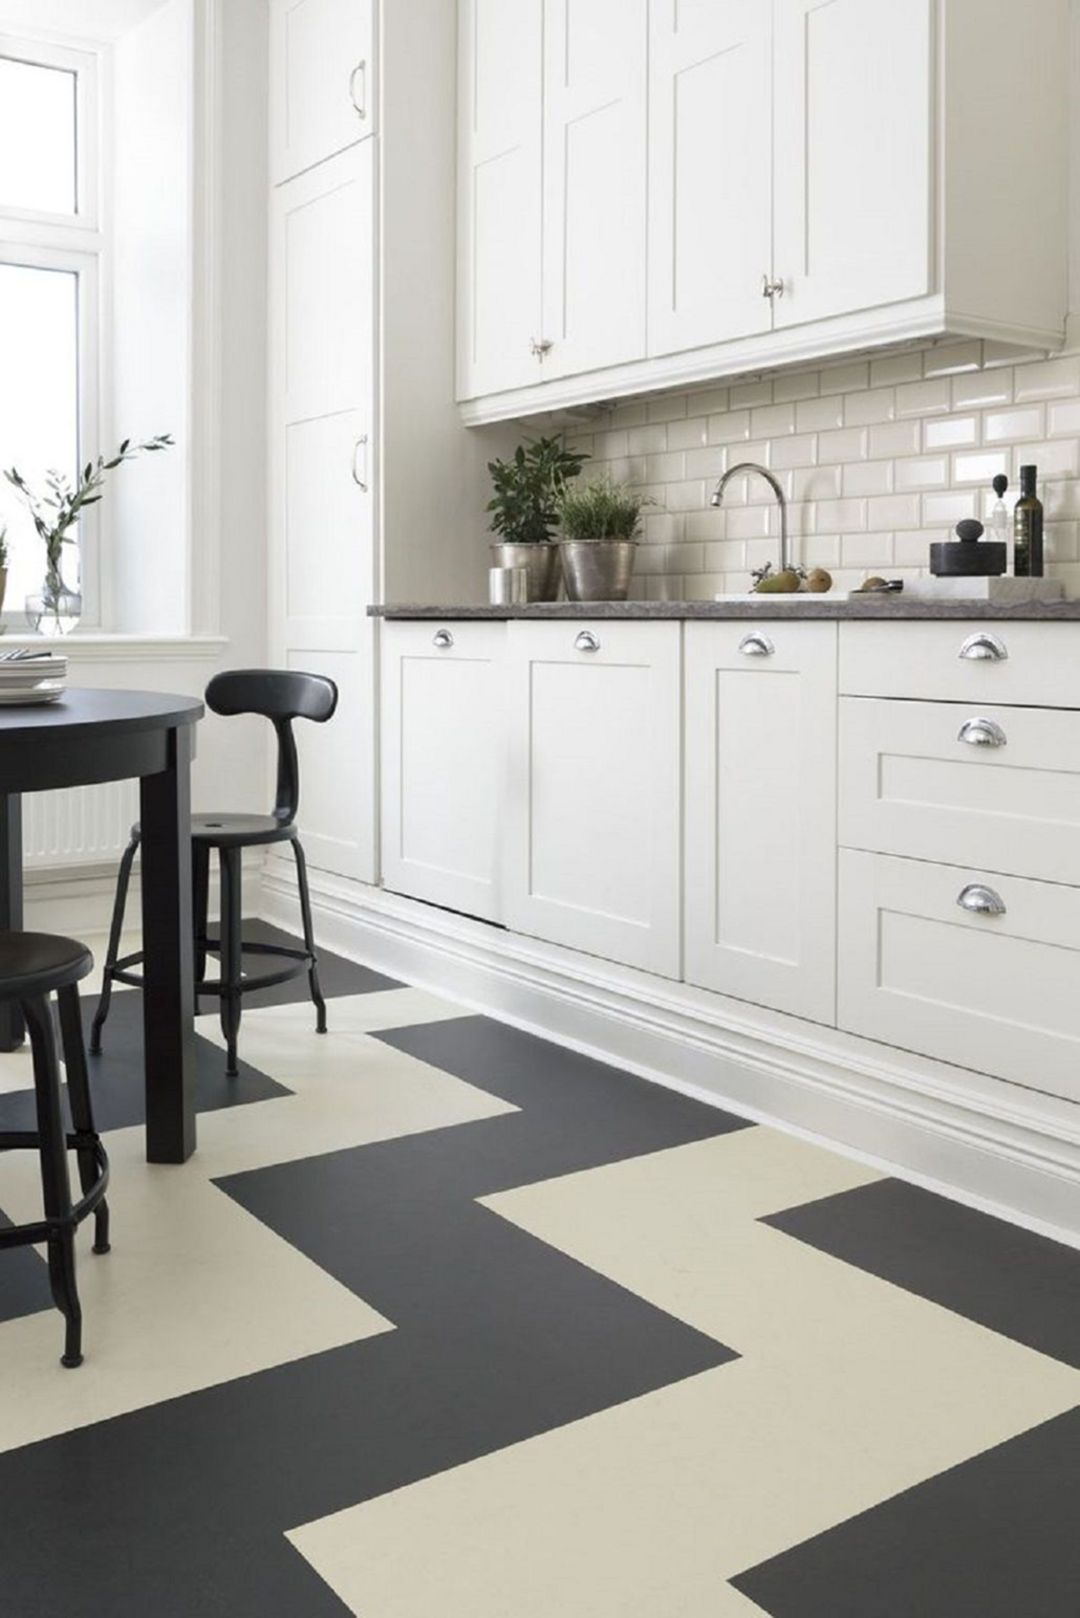 15 Most Popular Kitchen Floor Design Ideas For Perfect